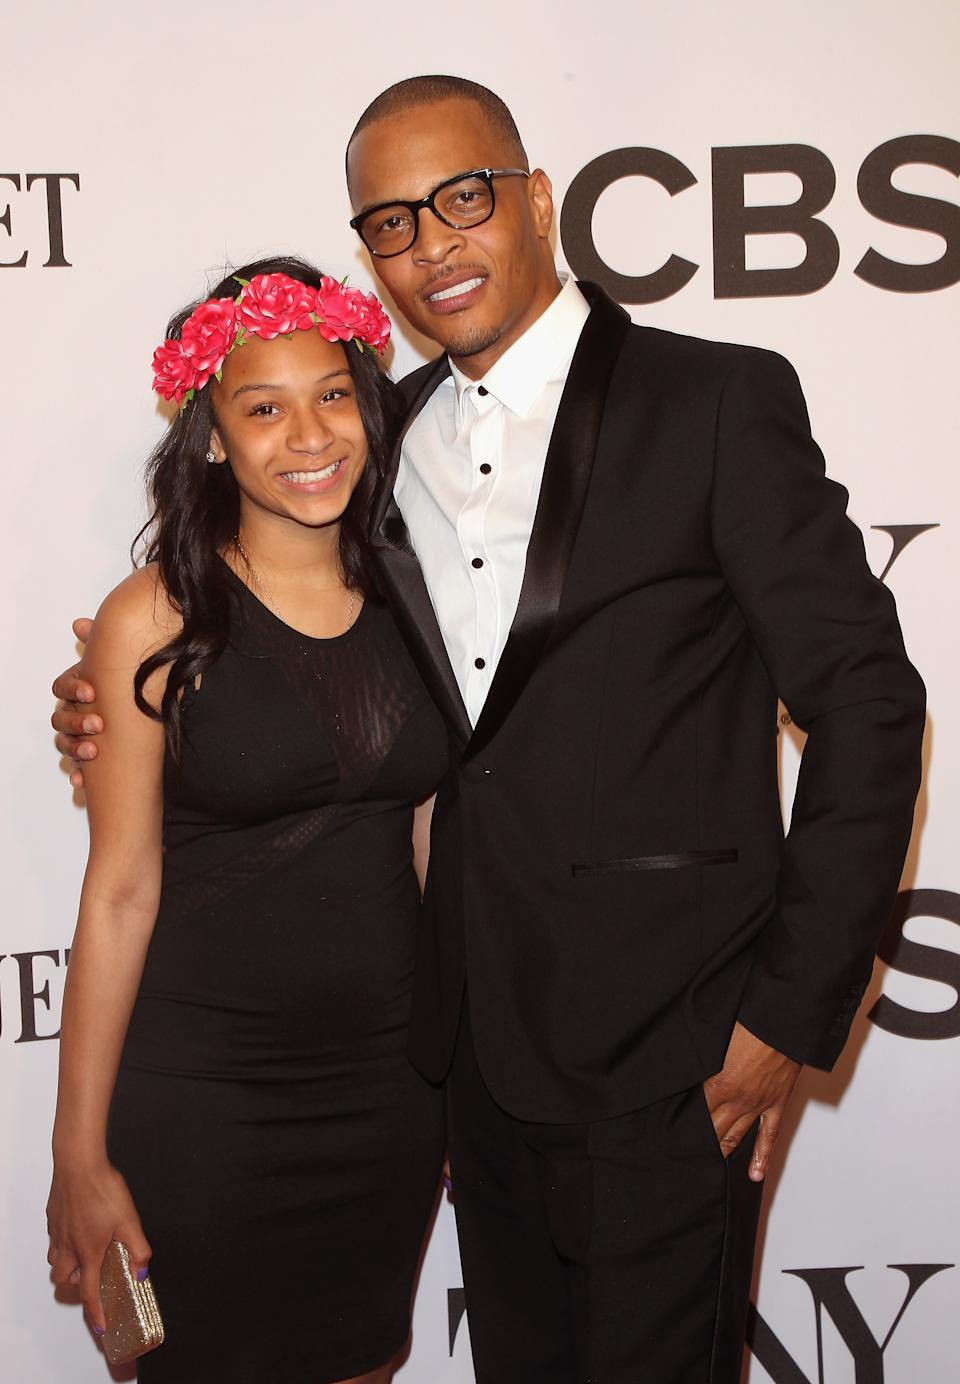 NEW YORK, NY - JUNE 08:  Deyjah Imani Harris (L) and T.I. attend American Theatre Wing's 68th Annual Tony Awards at Radio City Music Hall on June 8, 2014 in New York City.  (Photo by Jim Spellman/WireImage)